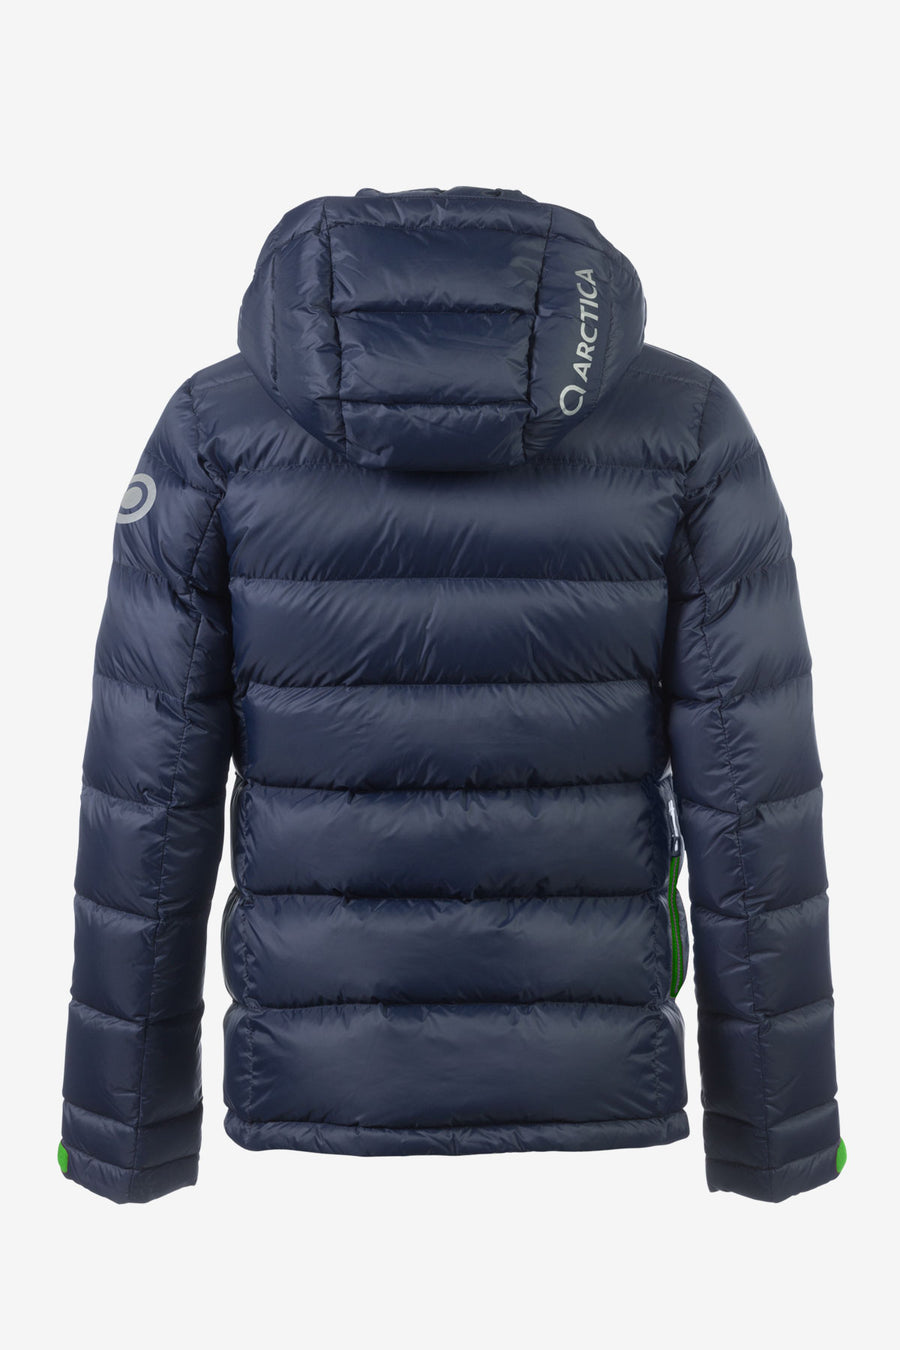 Arctica Youth Classic Down Jacket - Midnight